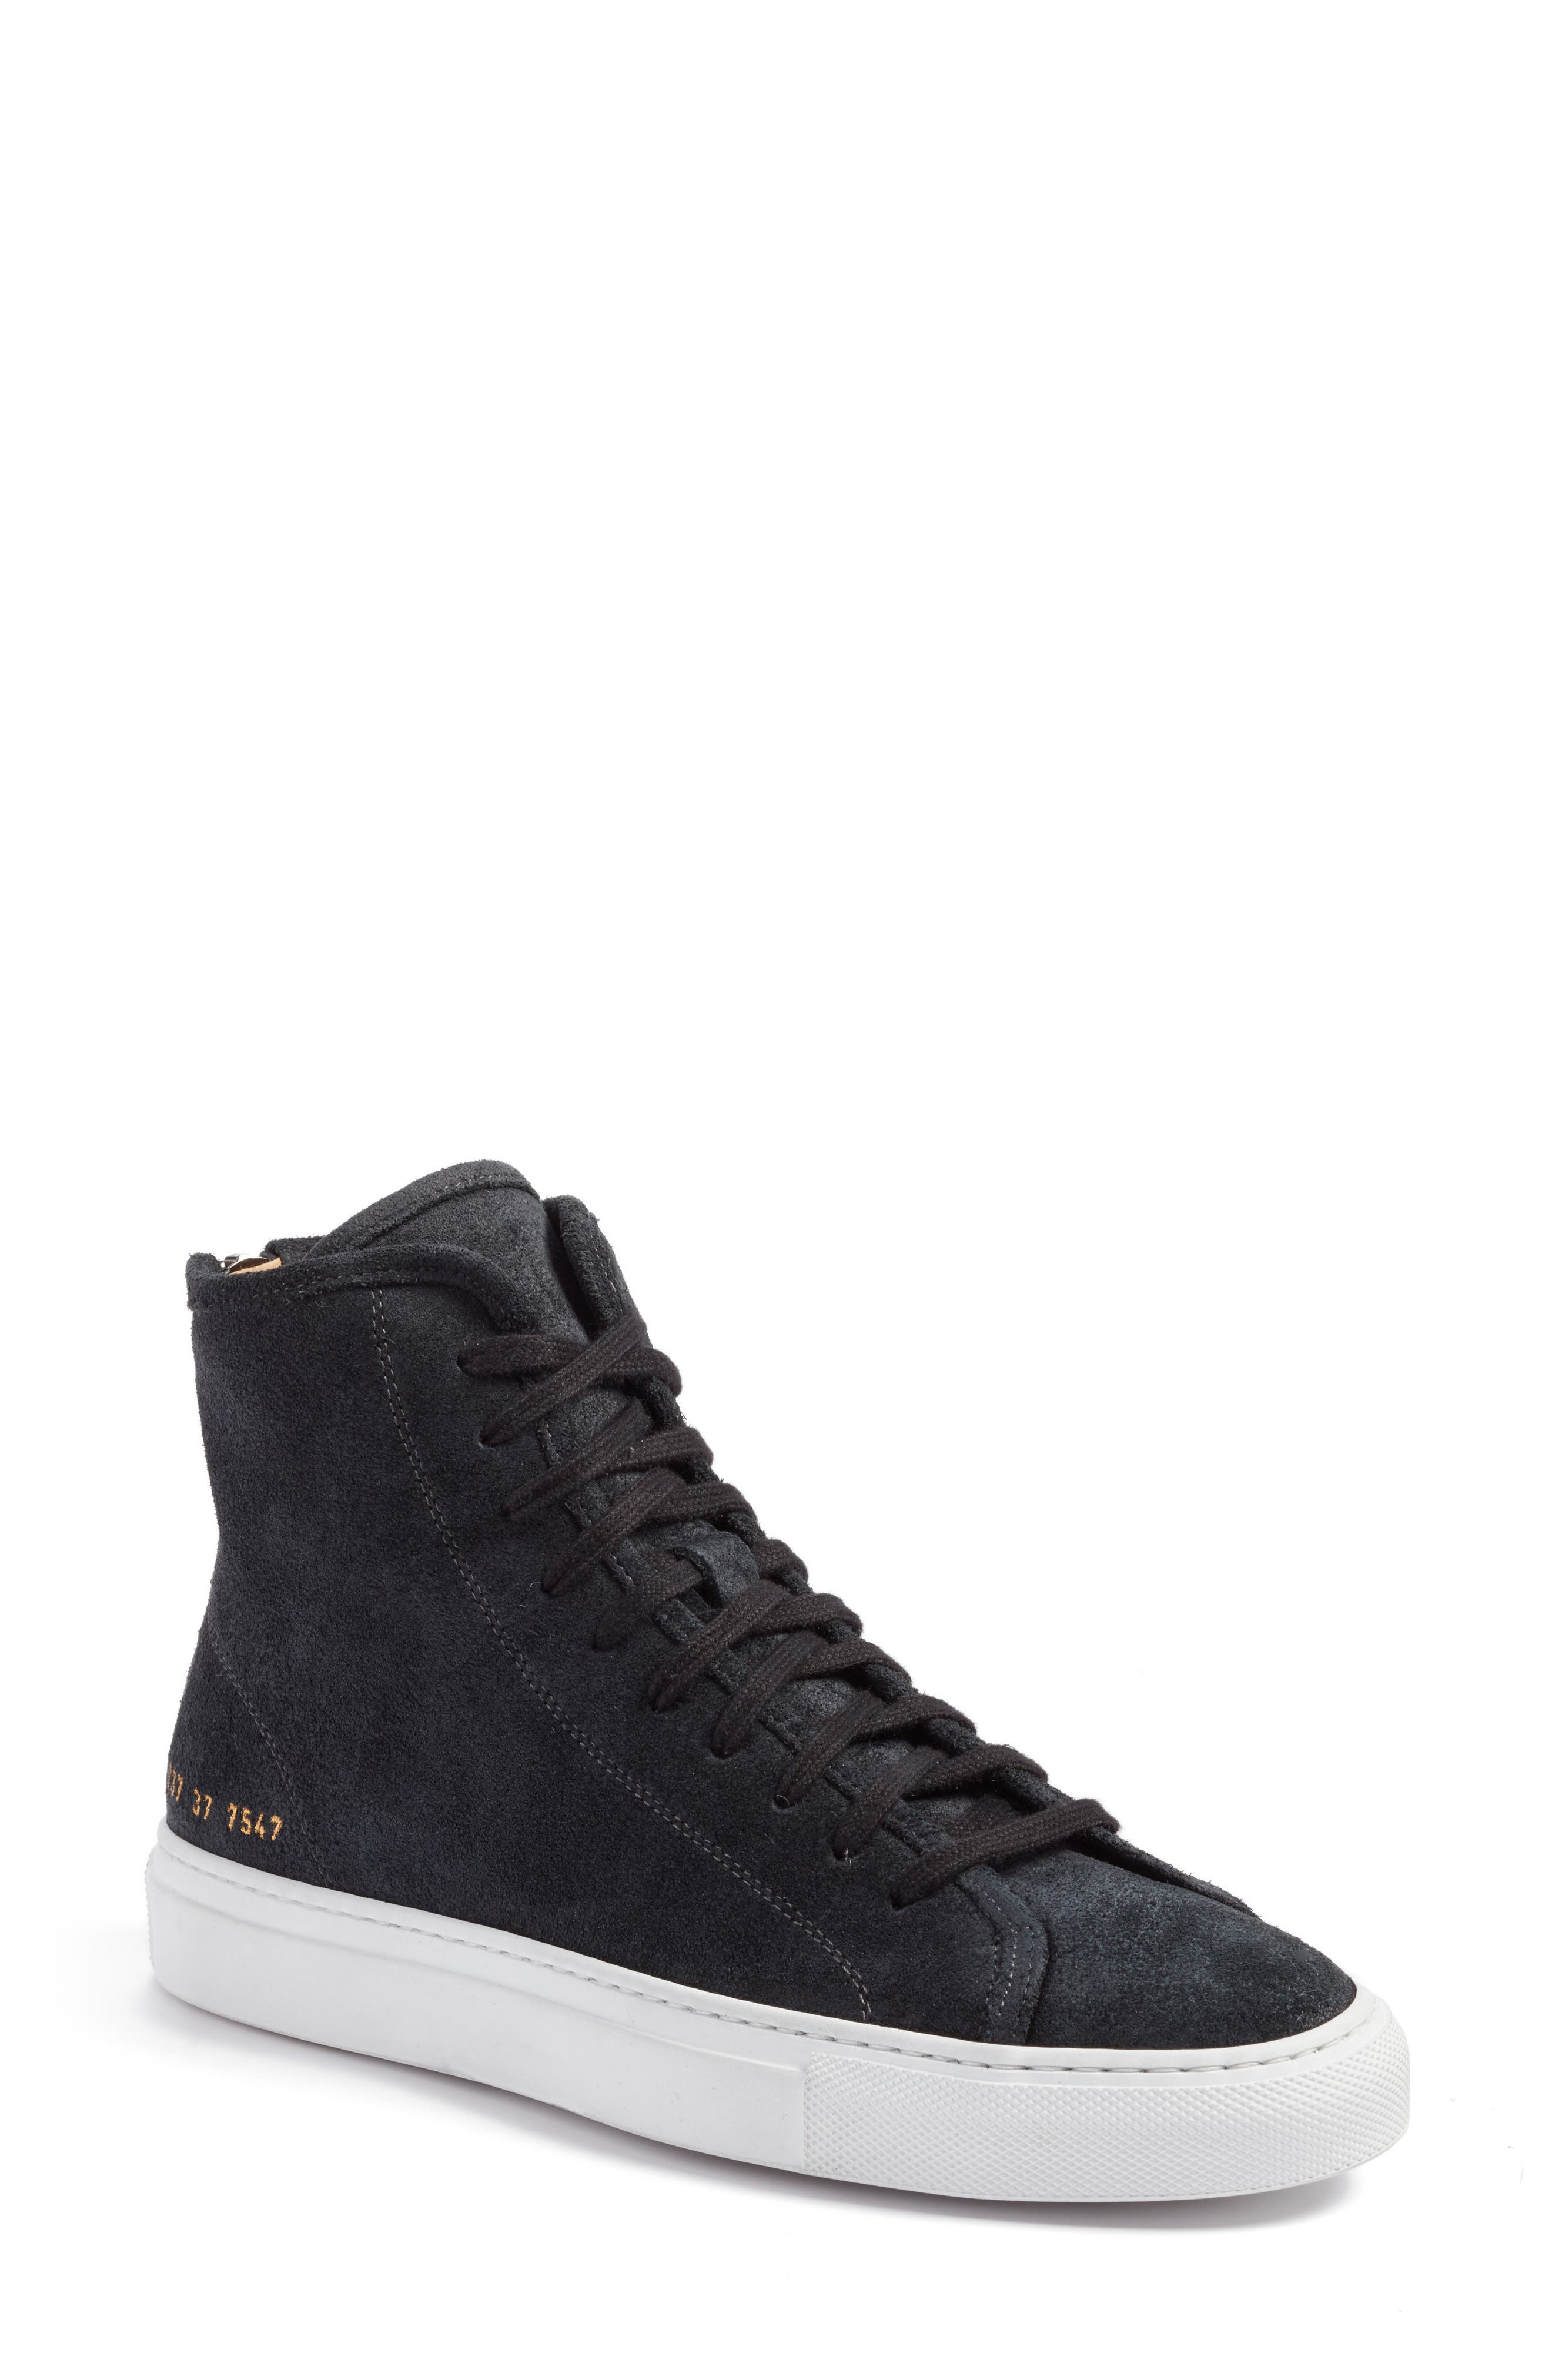 Tournament High Top Sneakers,                         Main,                         color,